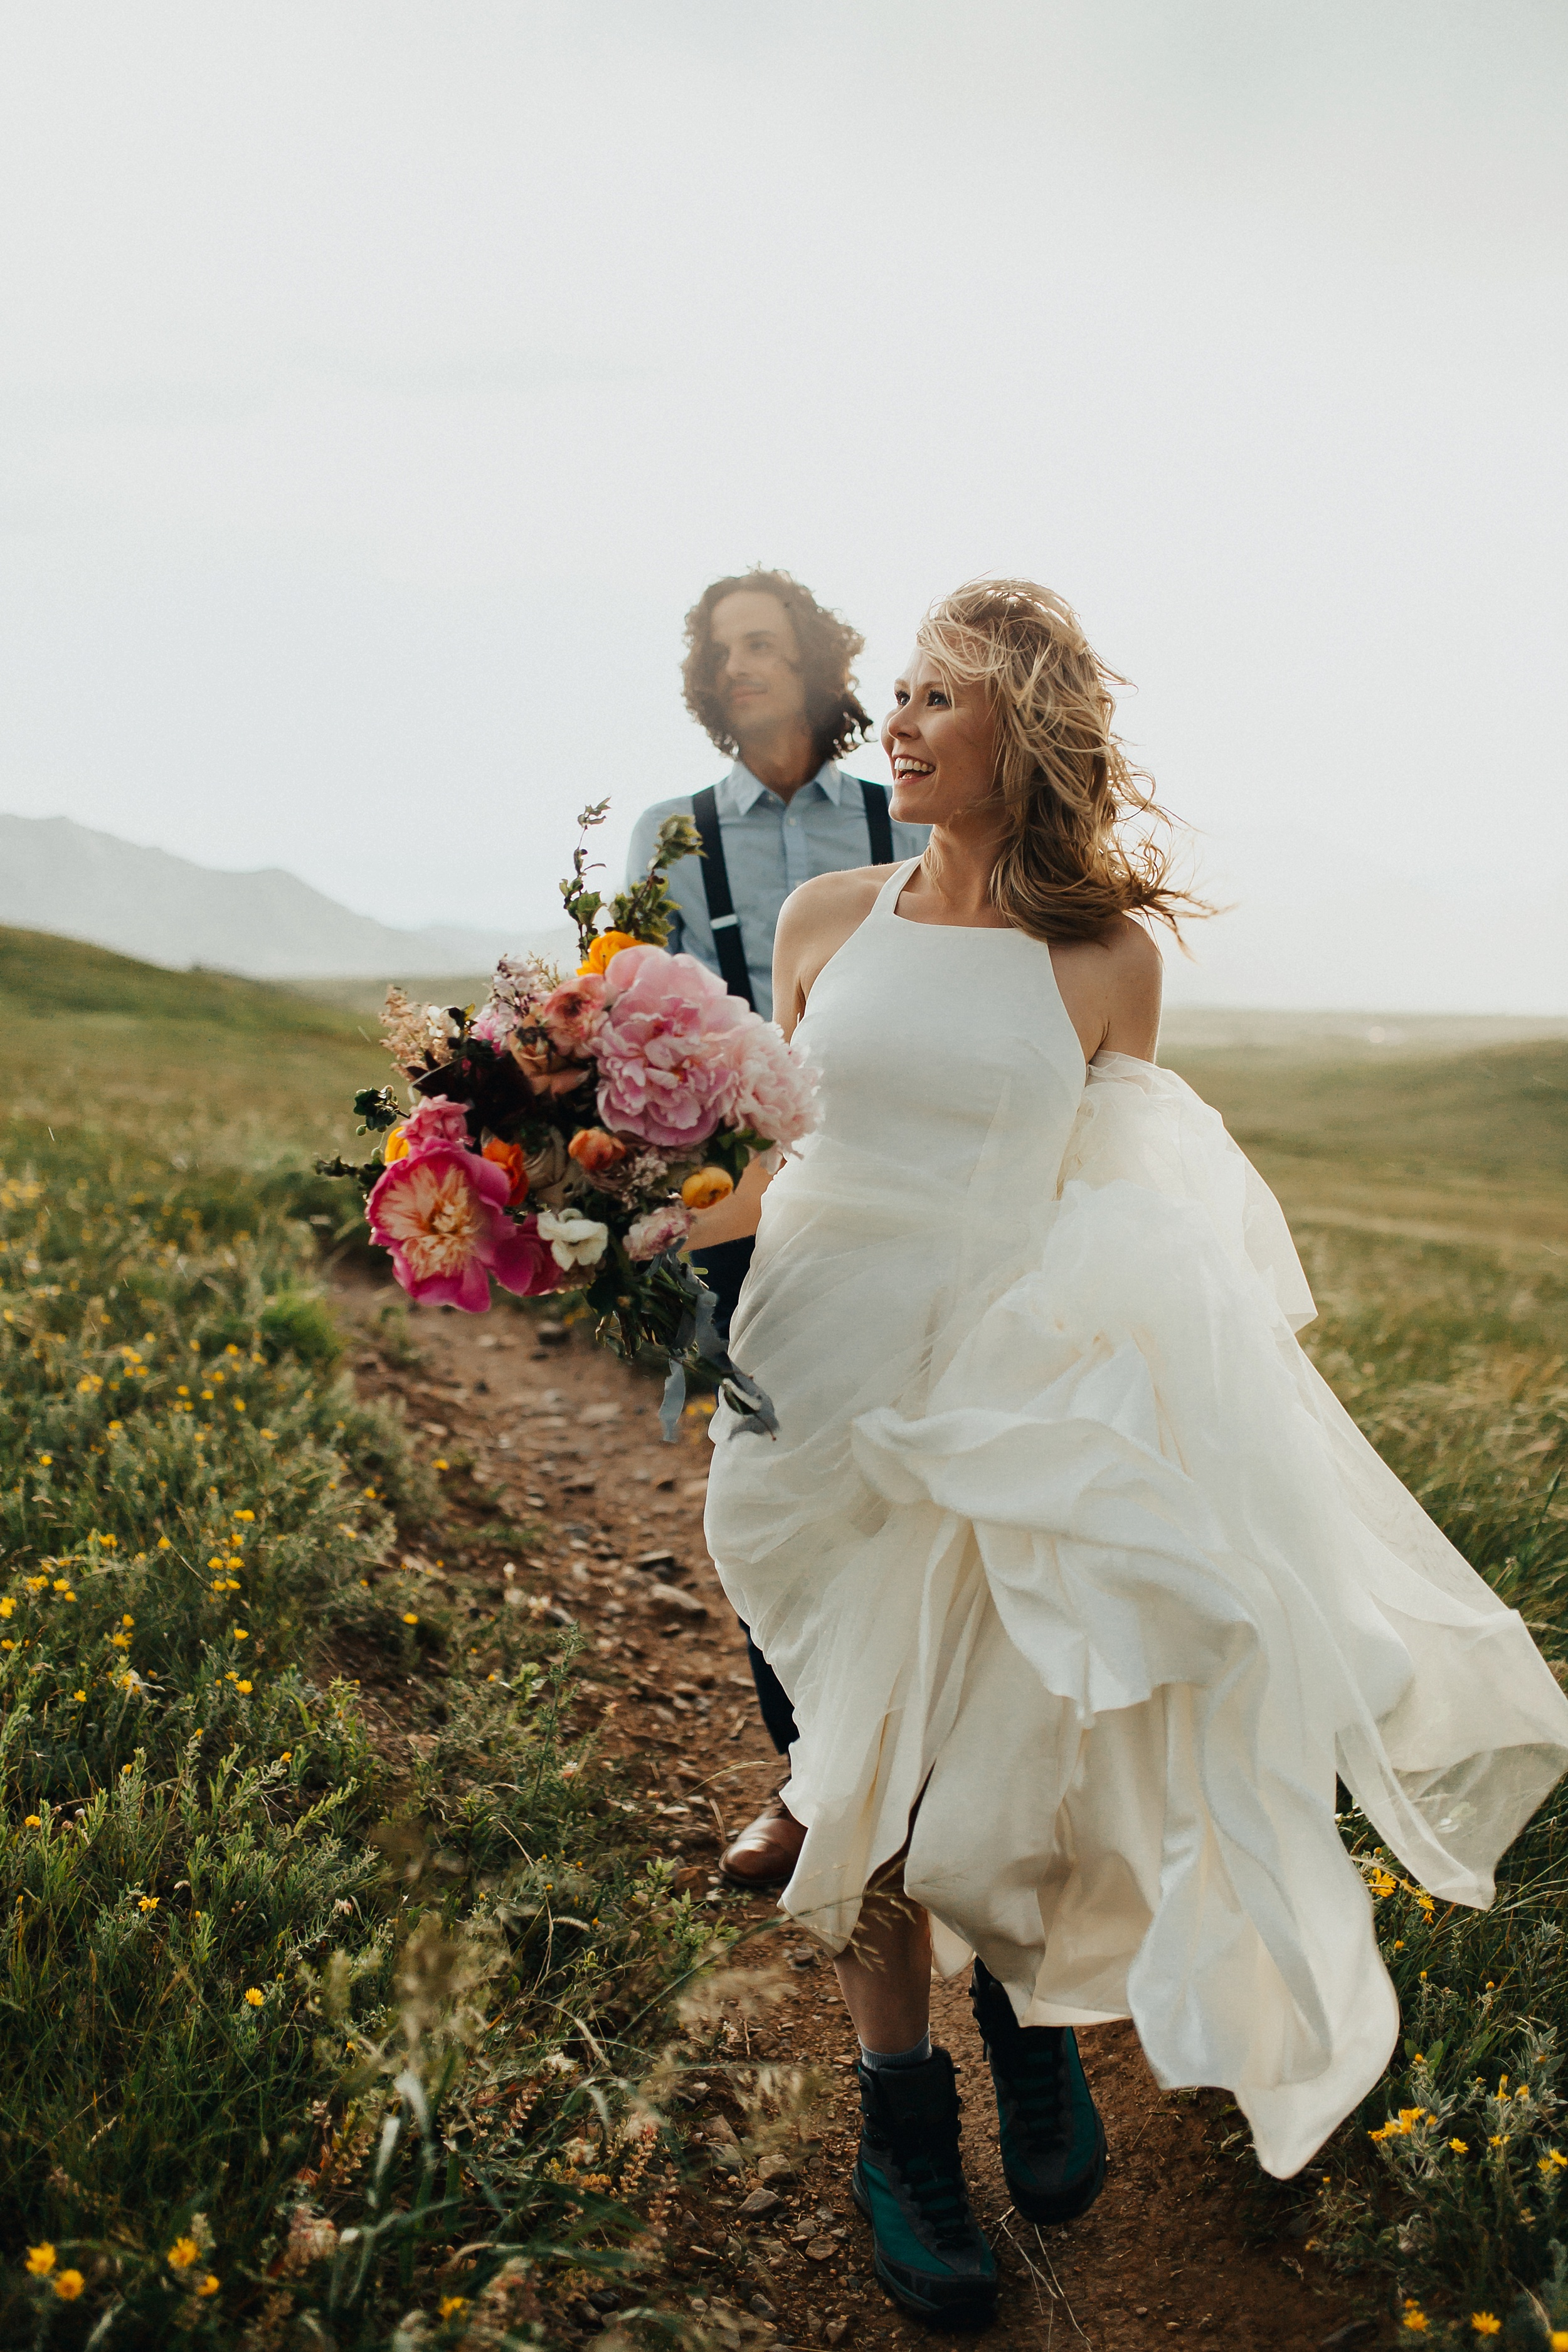 Boulder_Colorado_Elopement_Fringe_Boho_Mountains-27.jpg